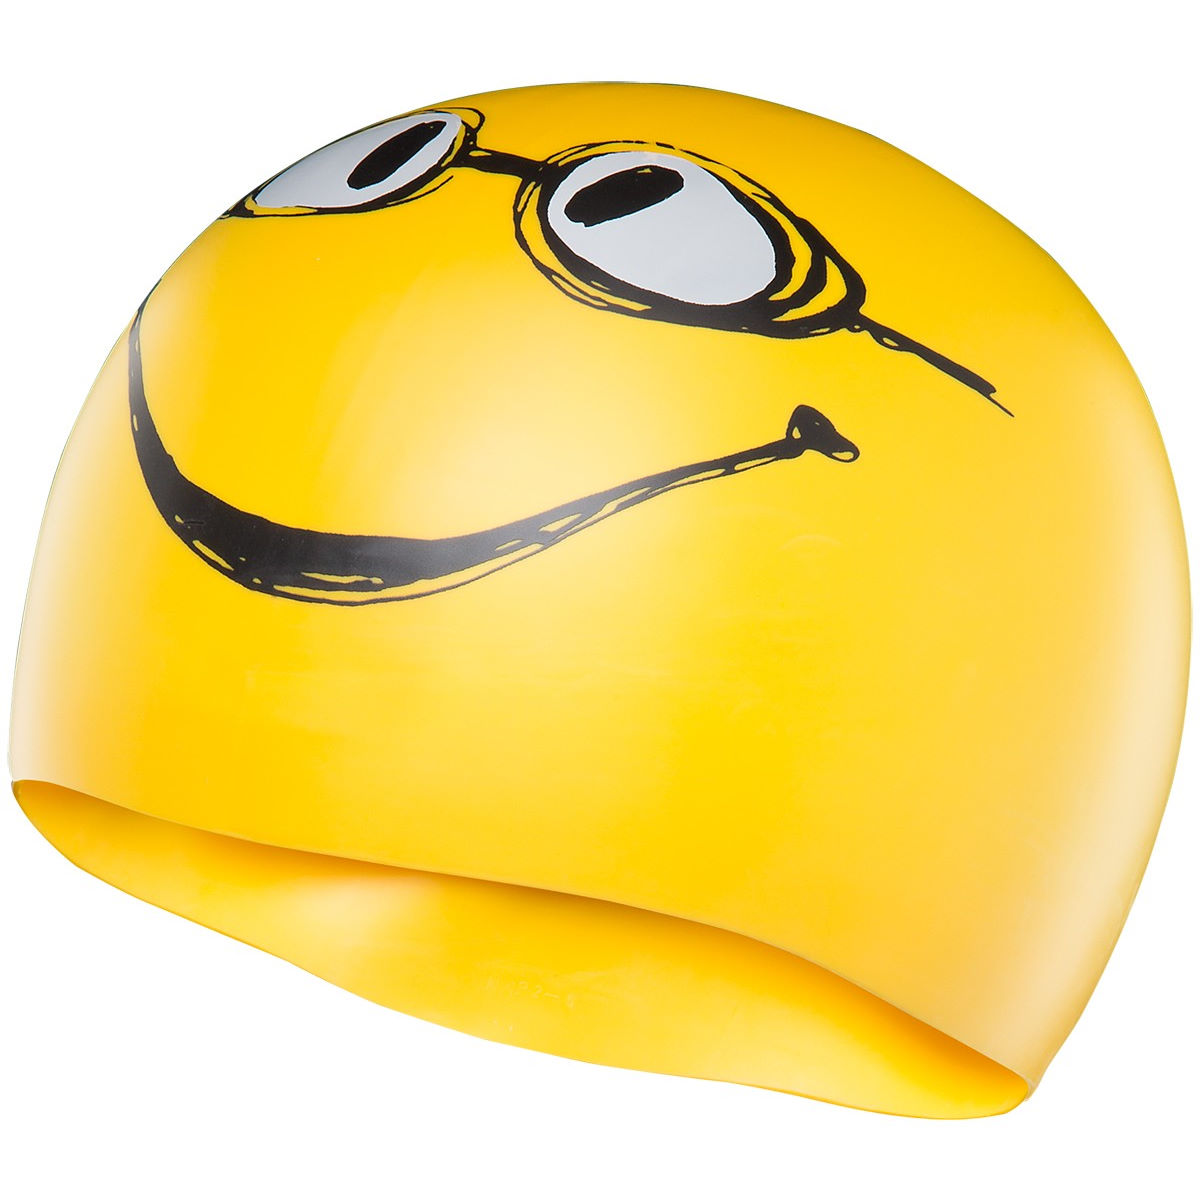 Image of Bonnet de natation TYR Have A Nice Day (silicone) - Taille unique